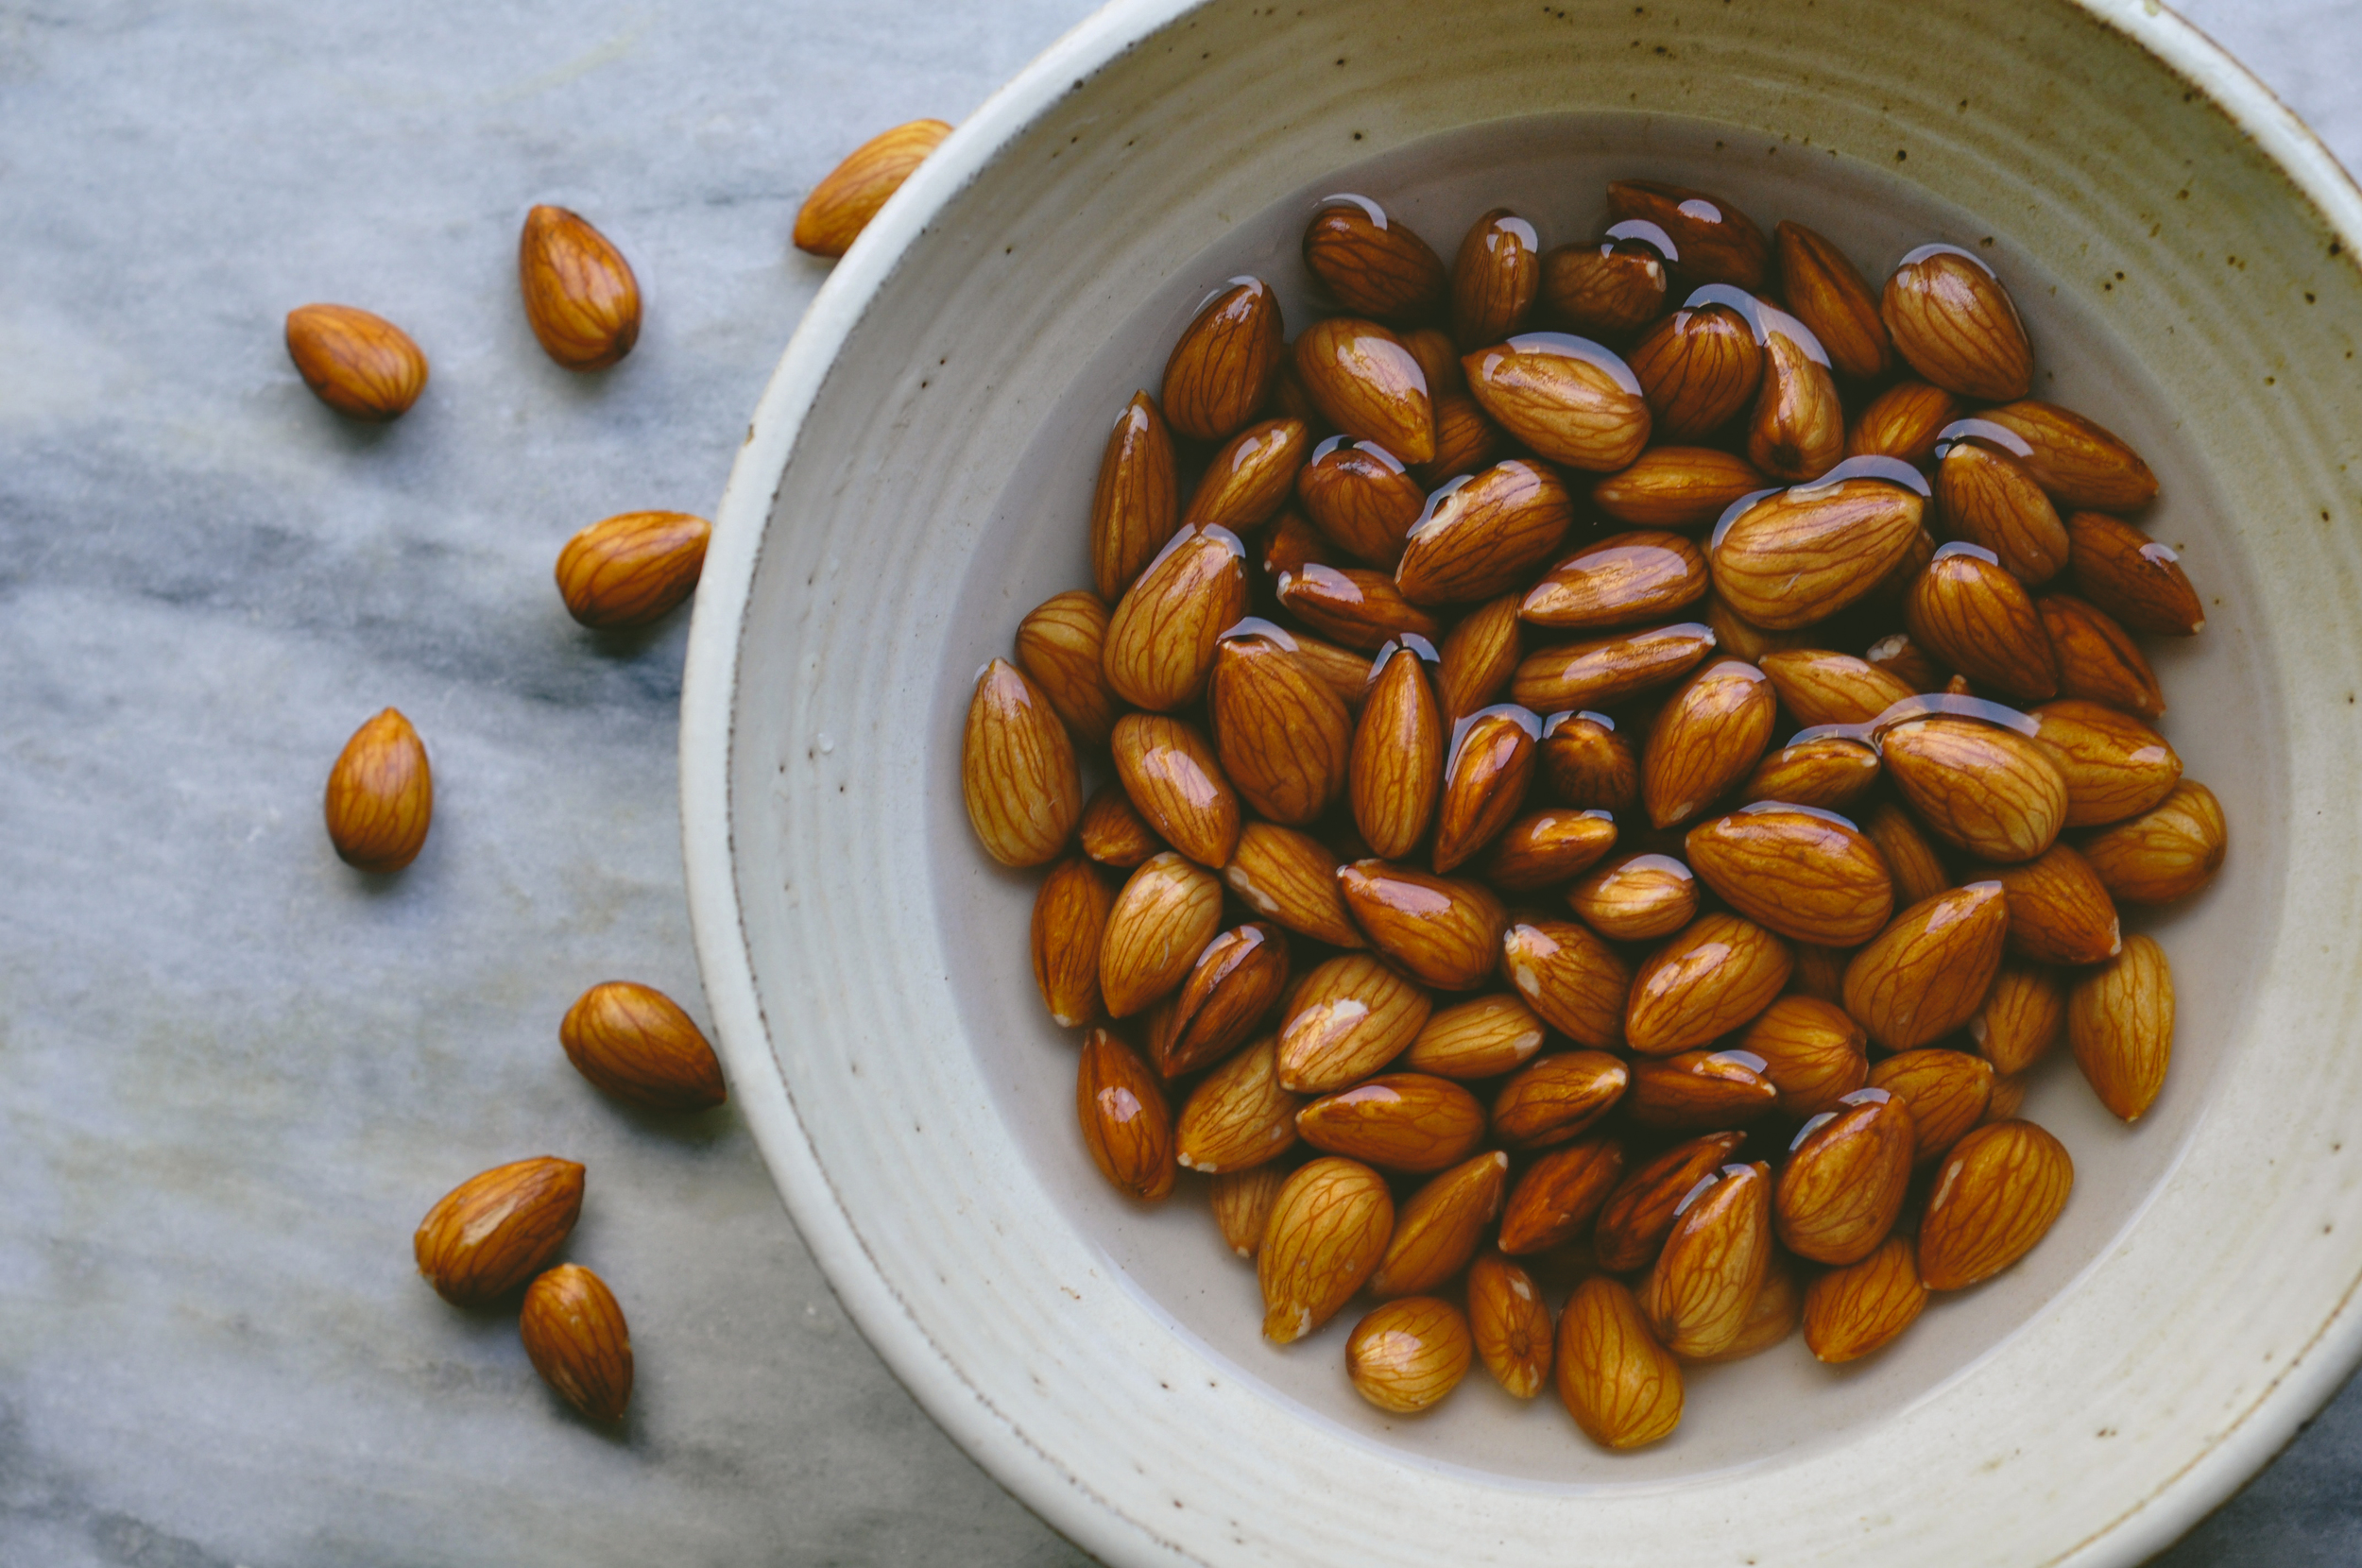 Freeandnativejournal_Sprouted_Almond_Milk_1.jpg